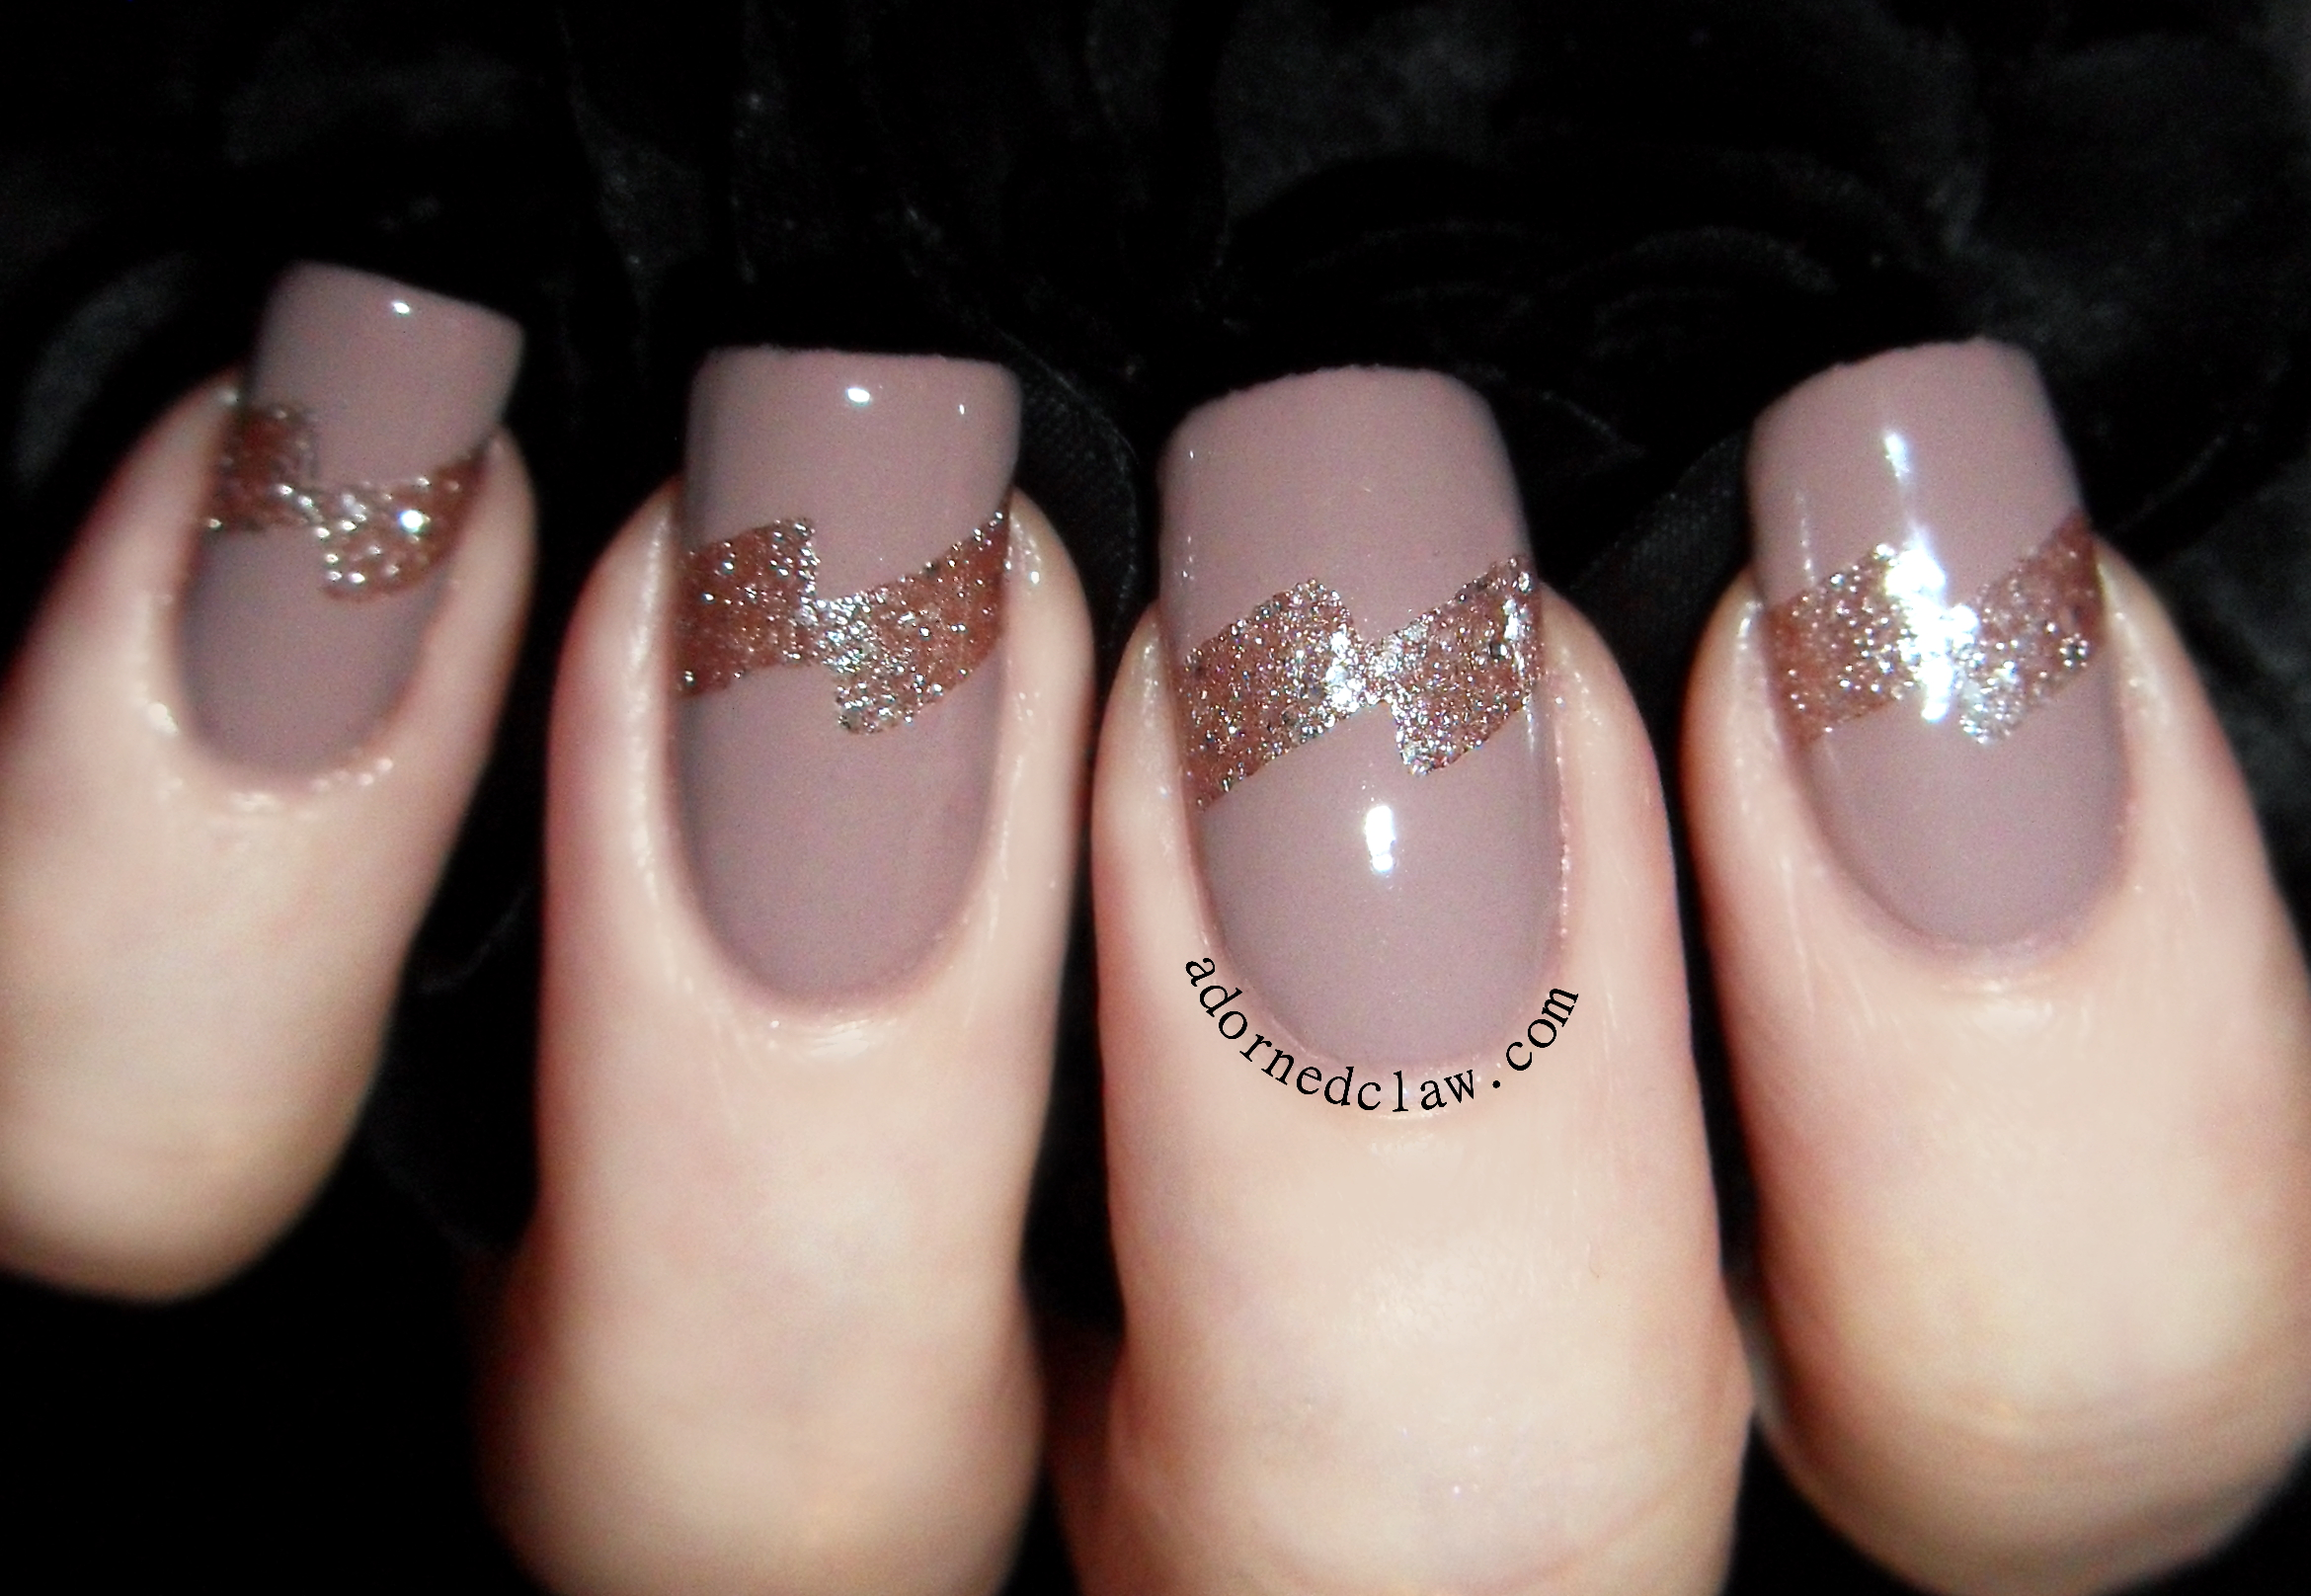 Born Pretty French Tip Guides Review | The Adorned Claw